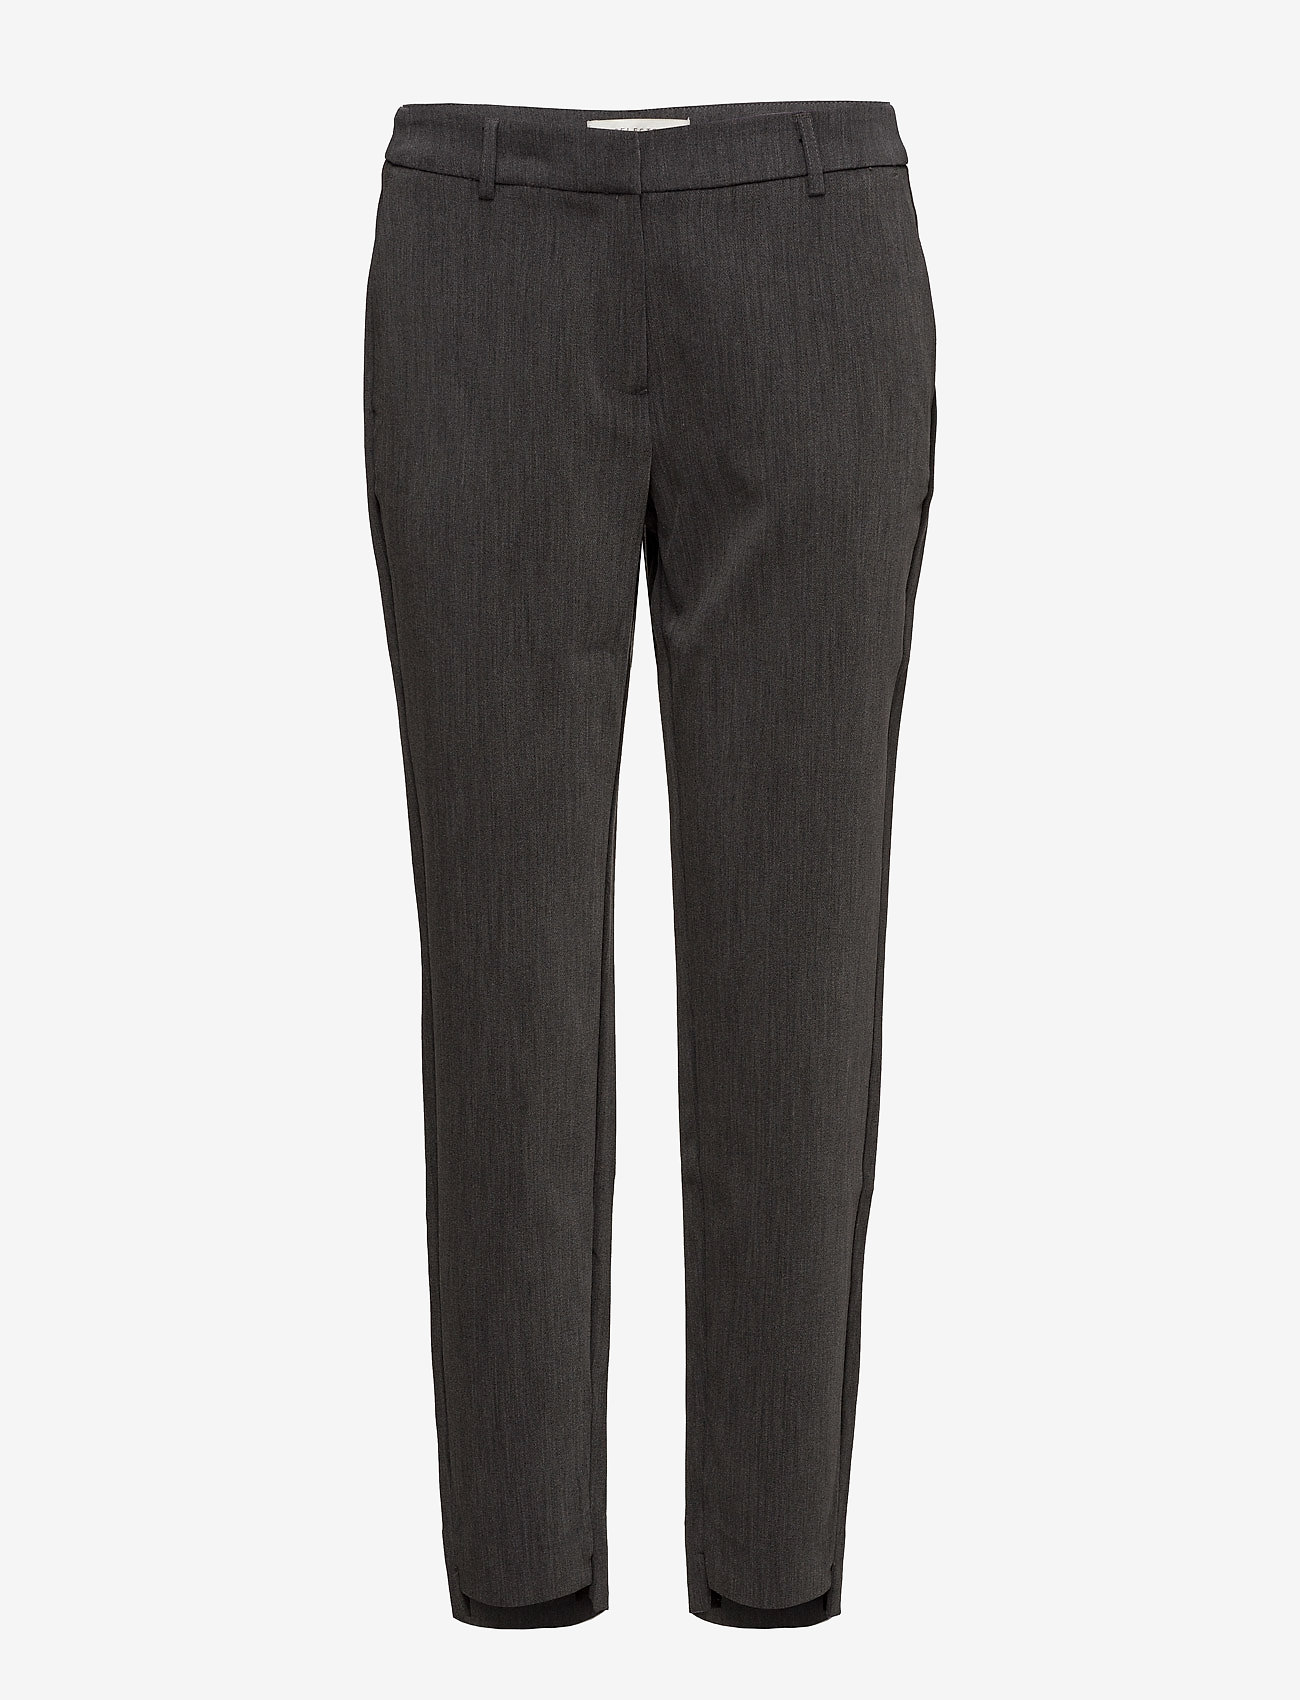 Selected Femme - SLFAMILA MW PANT NOOS - straight leg trousers - dark grey melange - 0